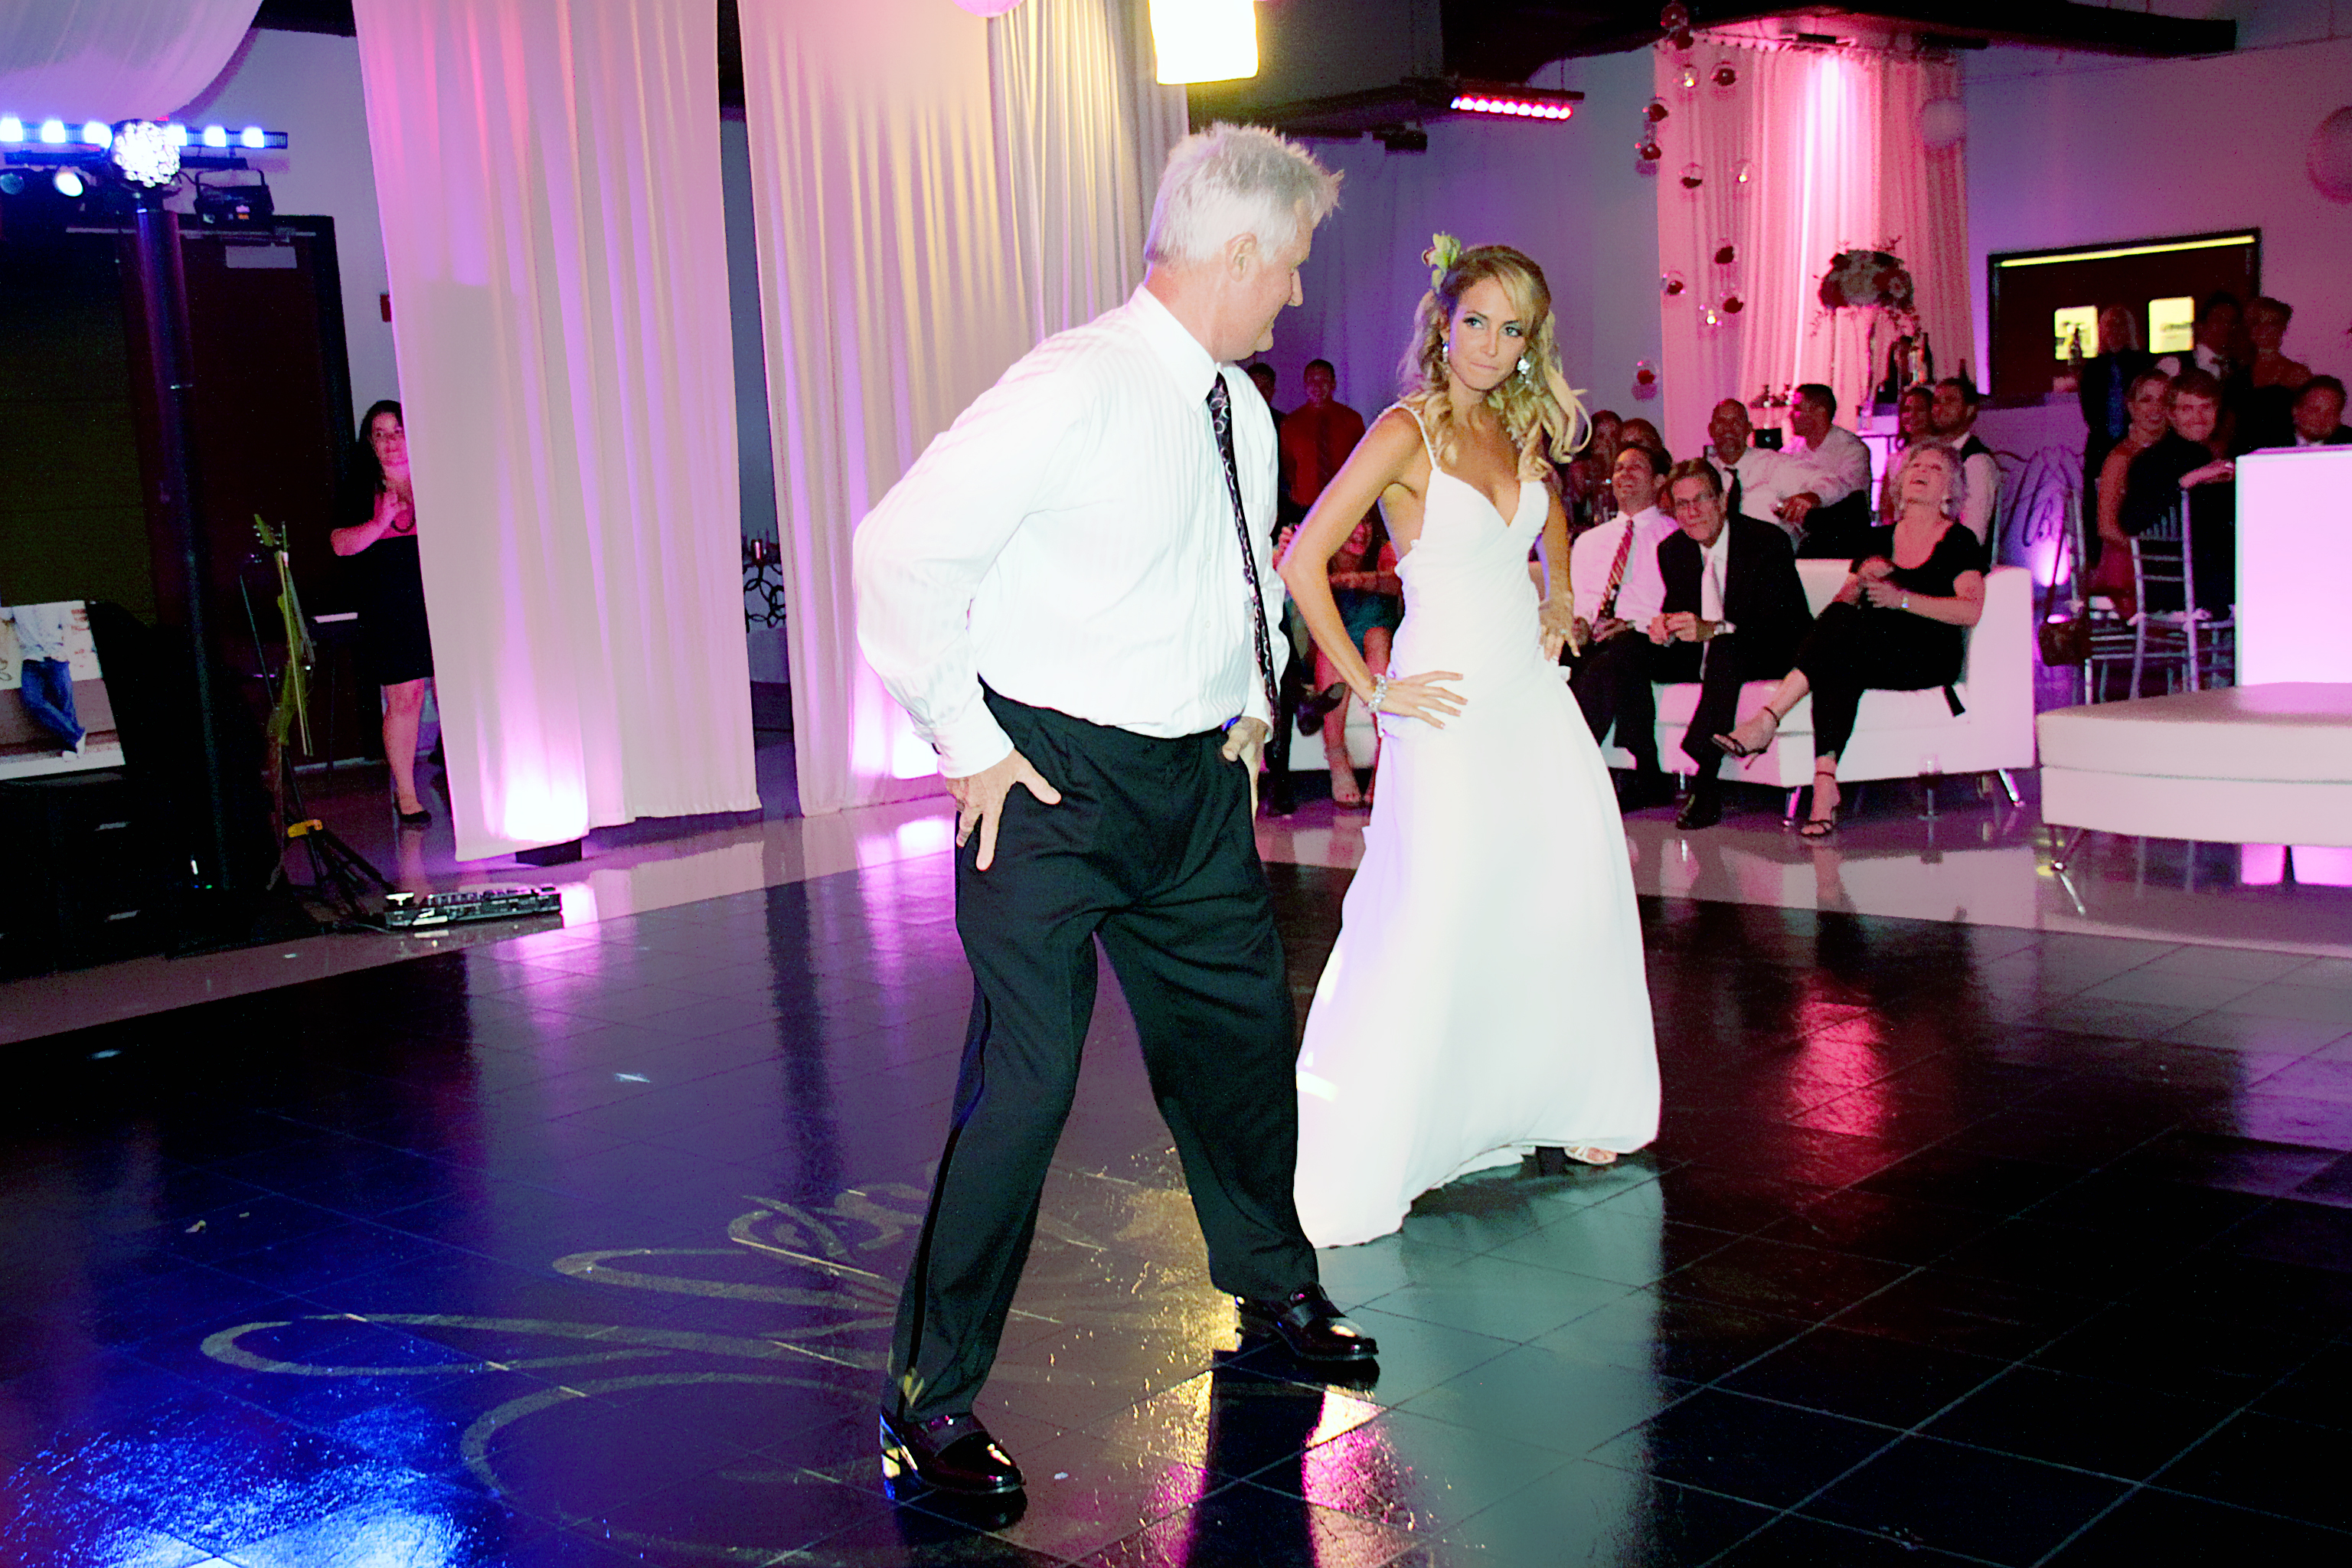 Funny father daughter dance at wedding reception